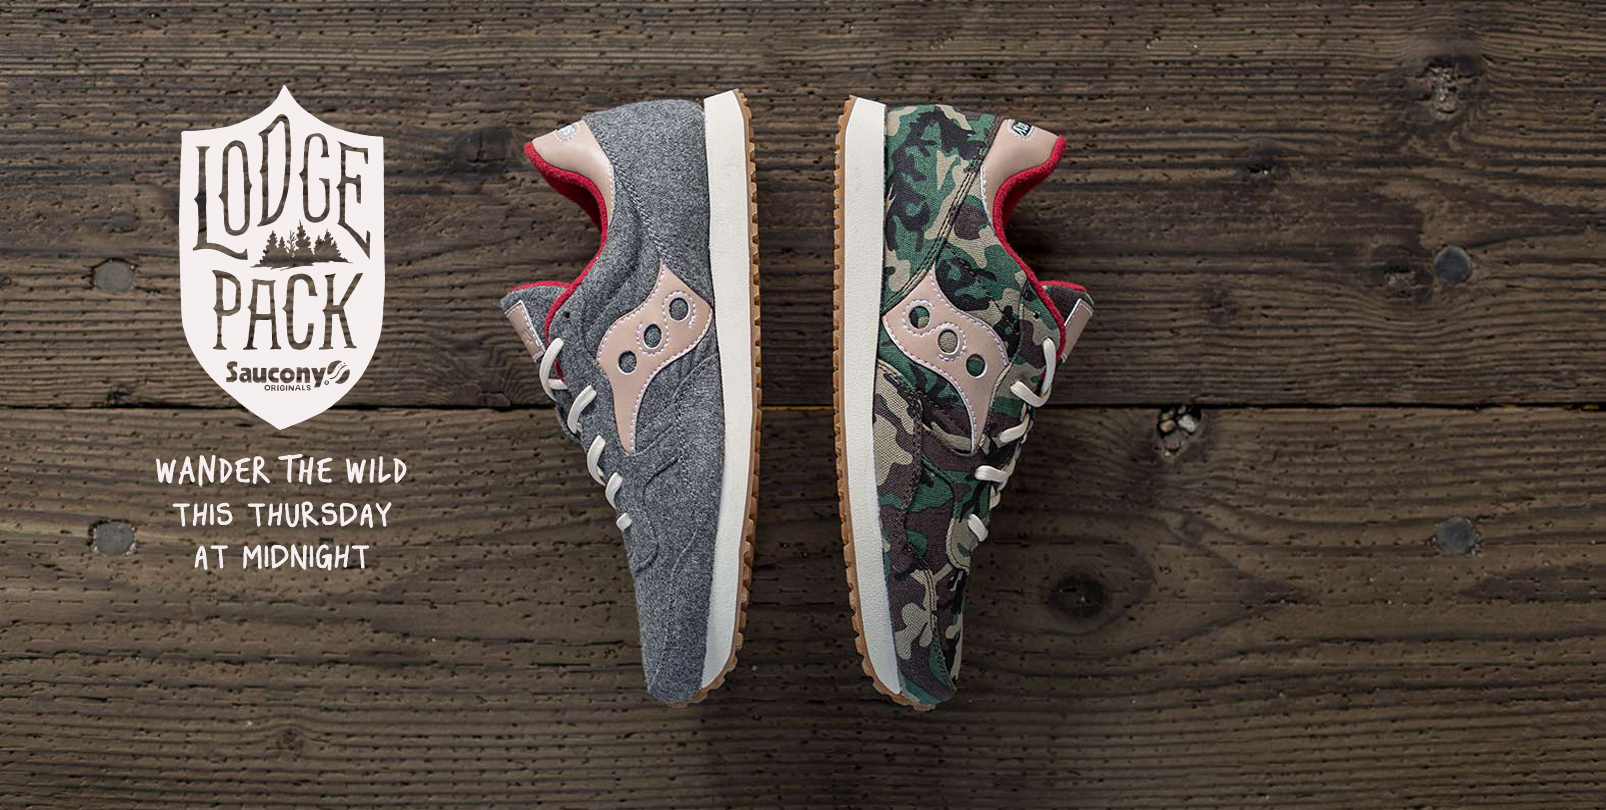 Saucony Lodge Pack coming soon